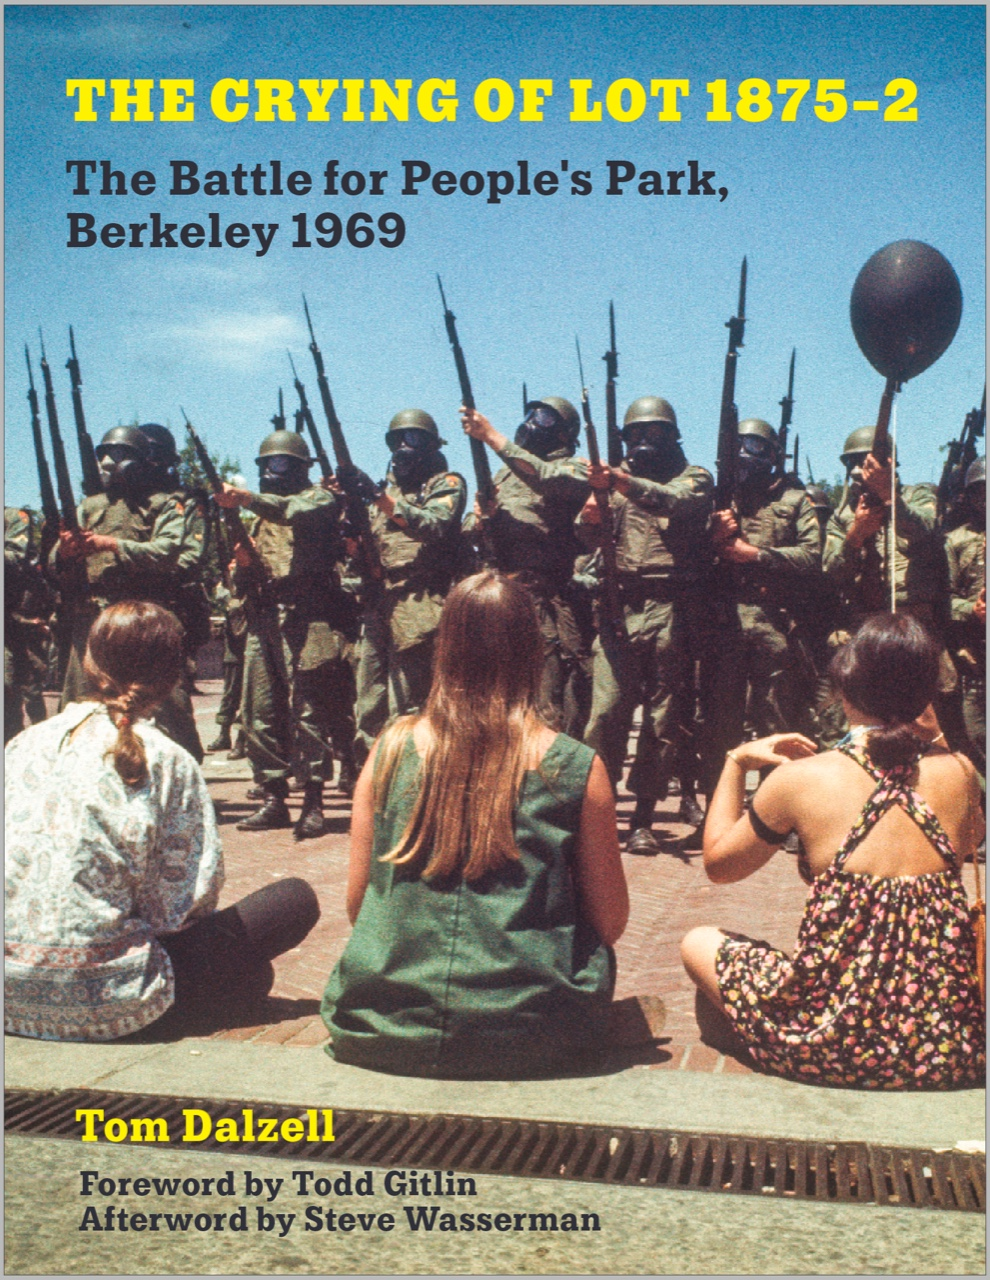 the-crying-of-lot-1875-2–battle-for-people's-park-berkeley-1969.jpg